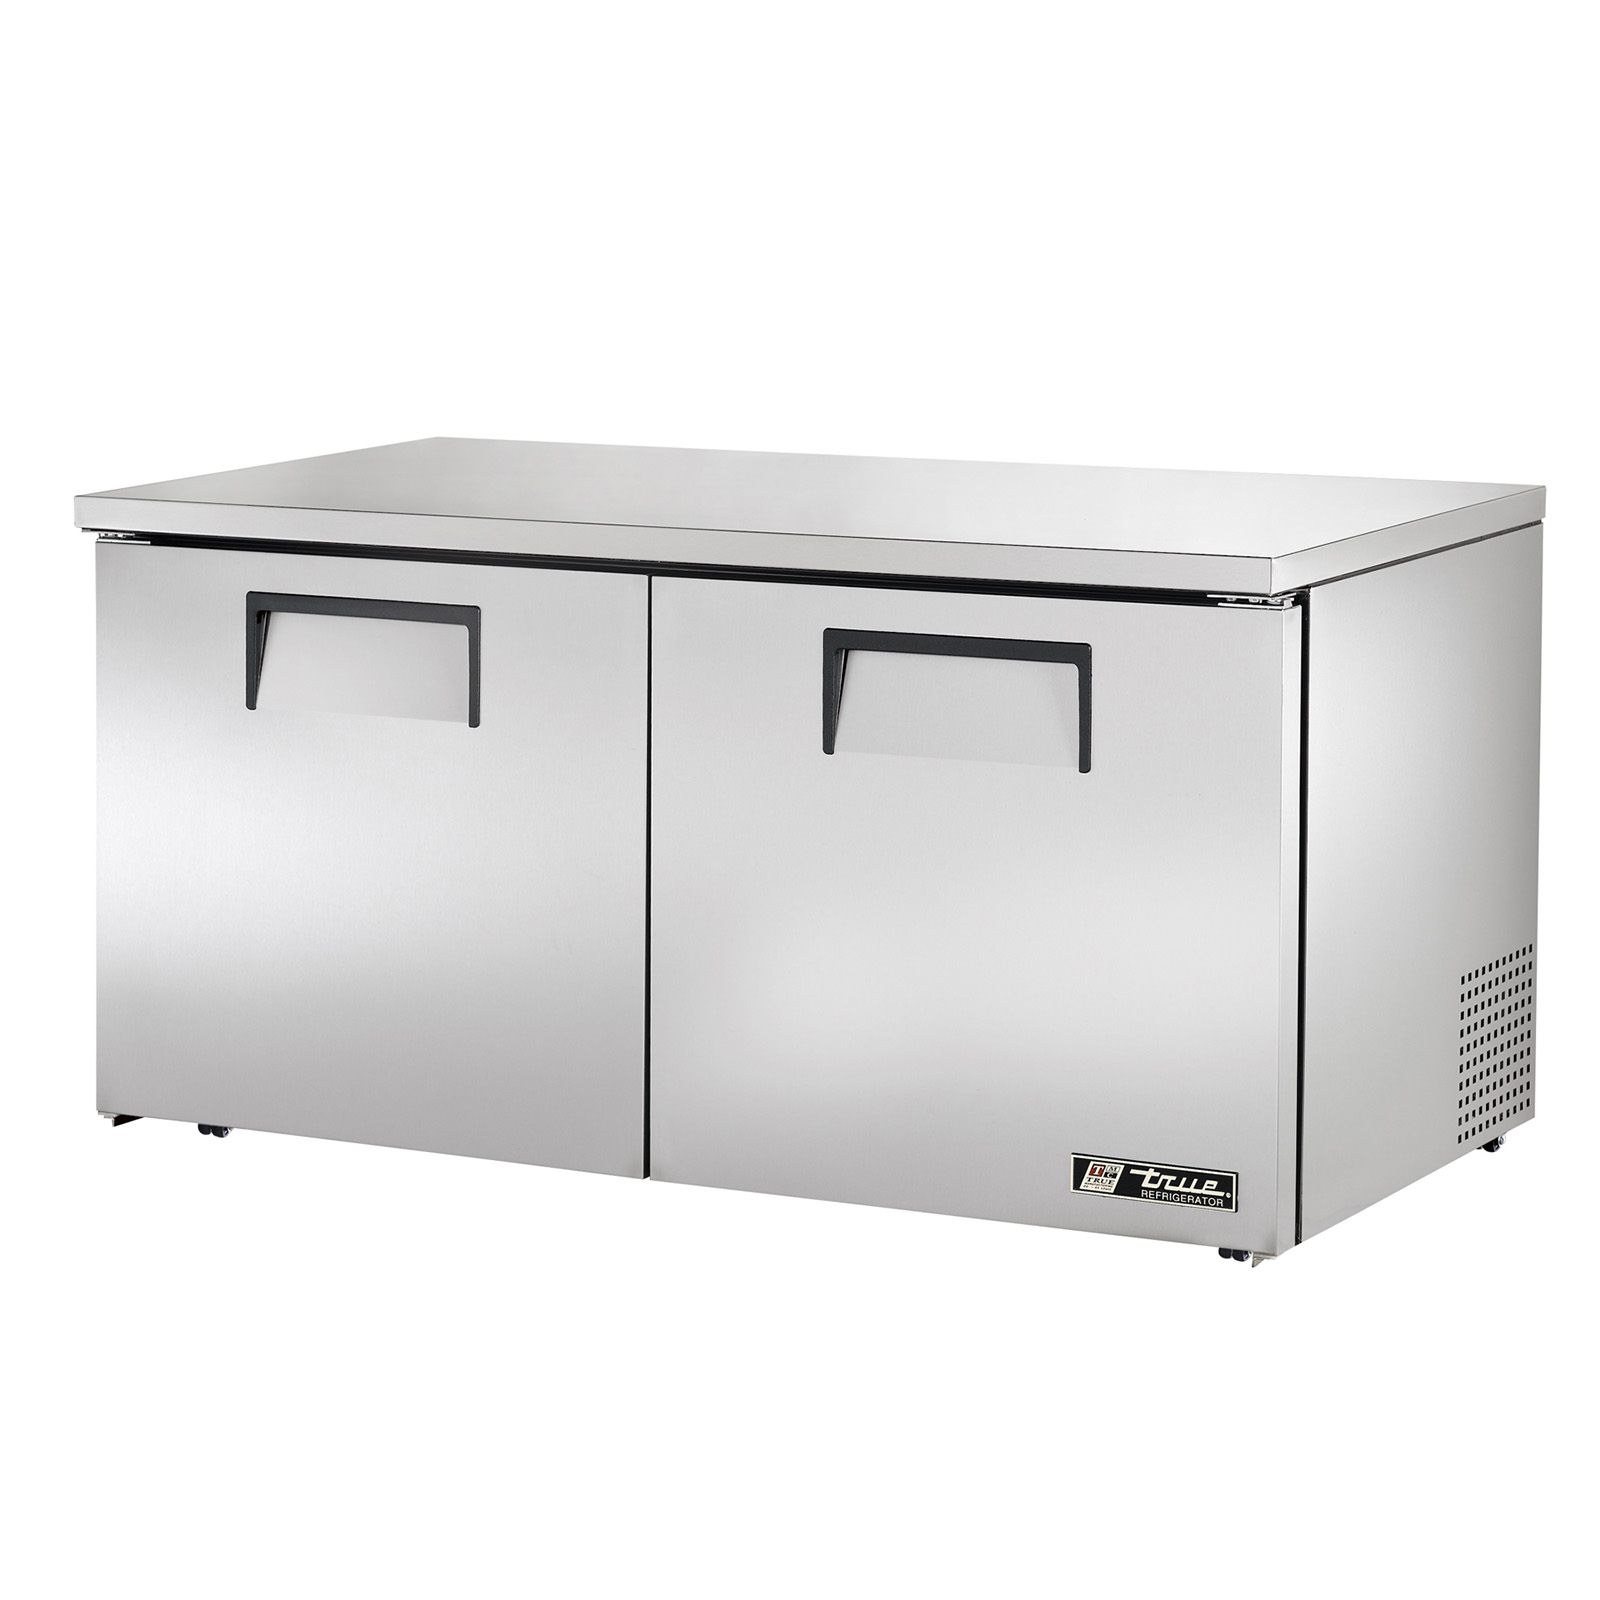 TUC-60-LP True - Low Profile Undercounter Refrigerator 33-38? F